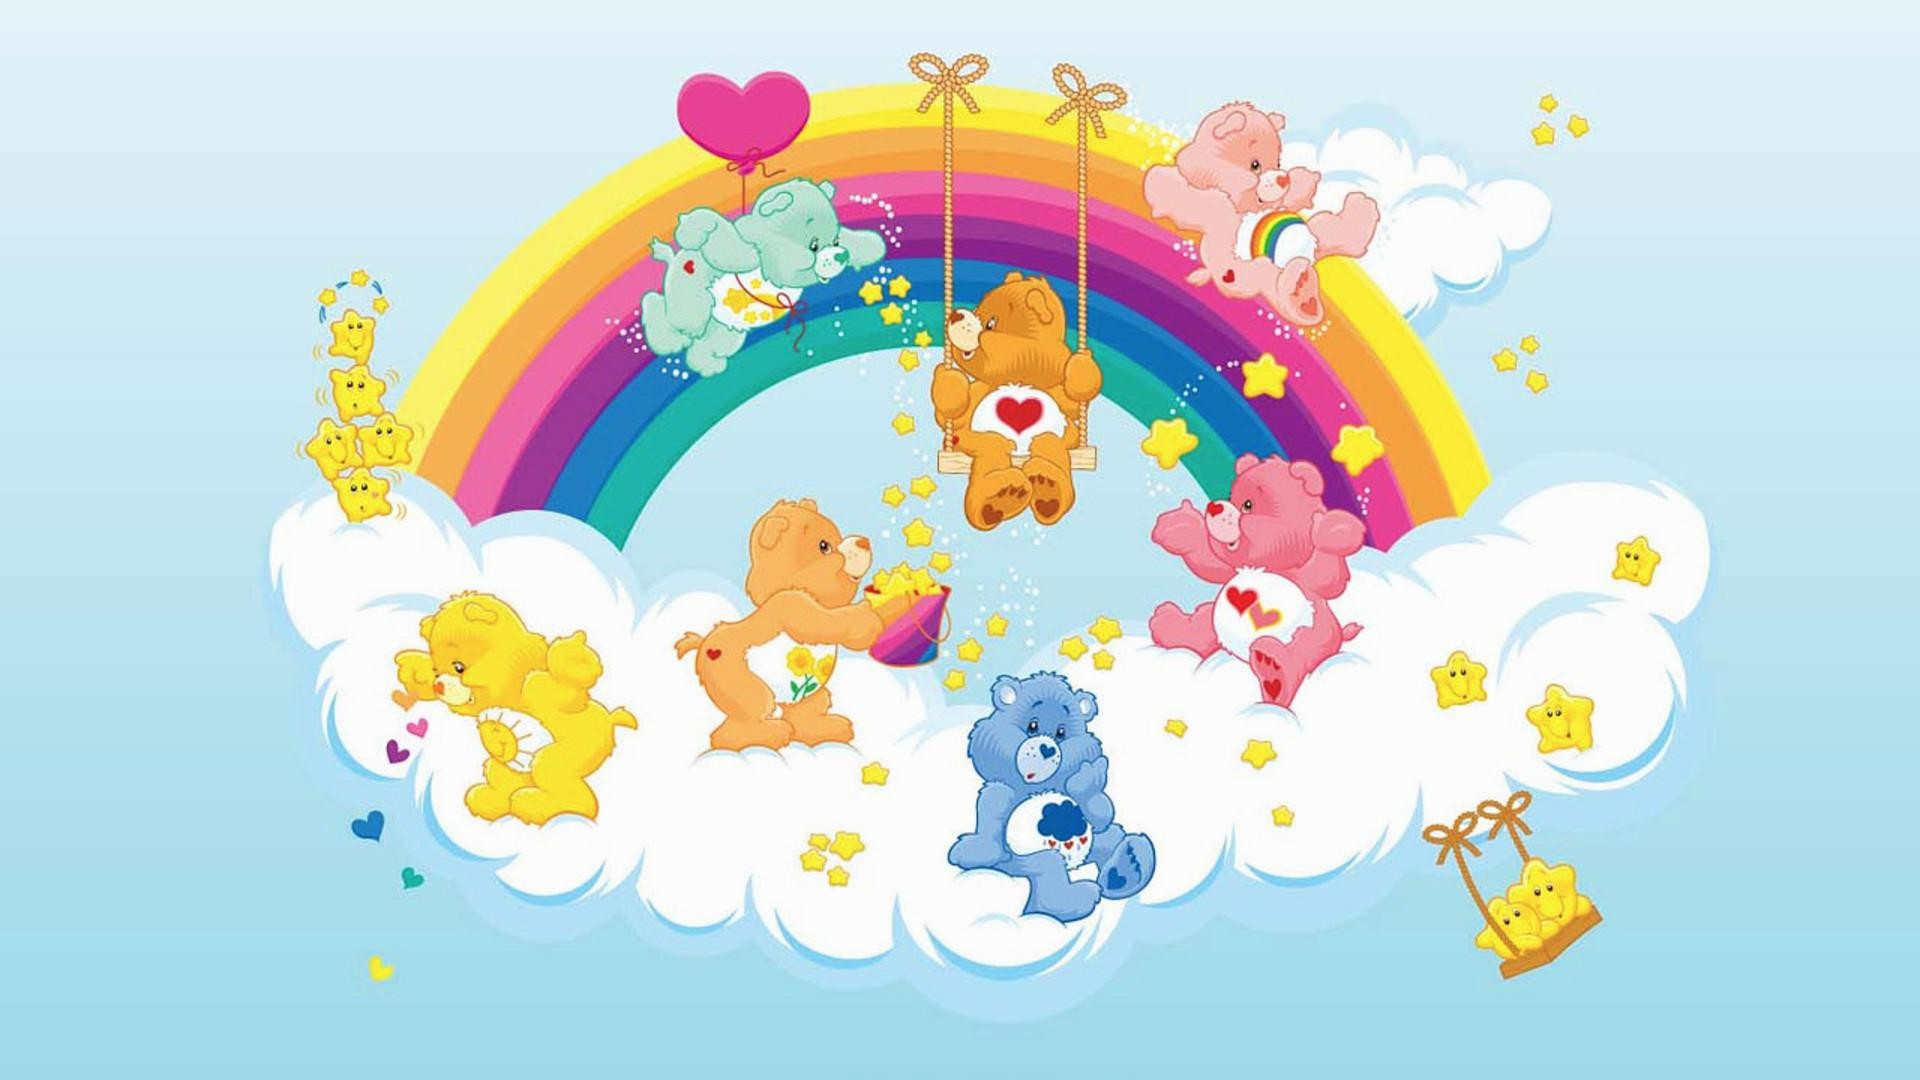 Care bears wallpaper backgrounds 59 images - Care bears wallpaper ...